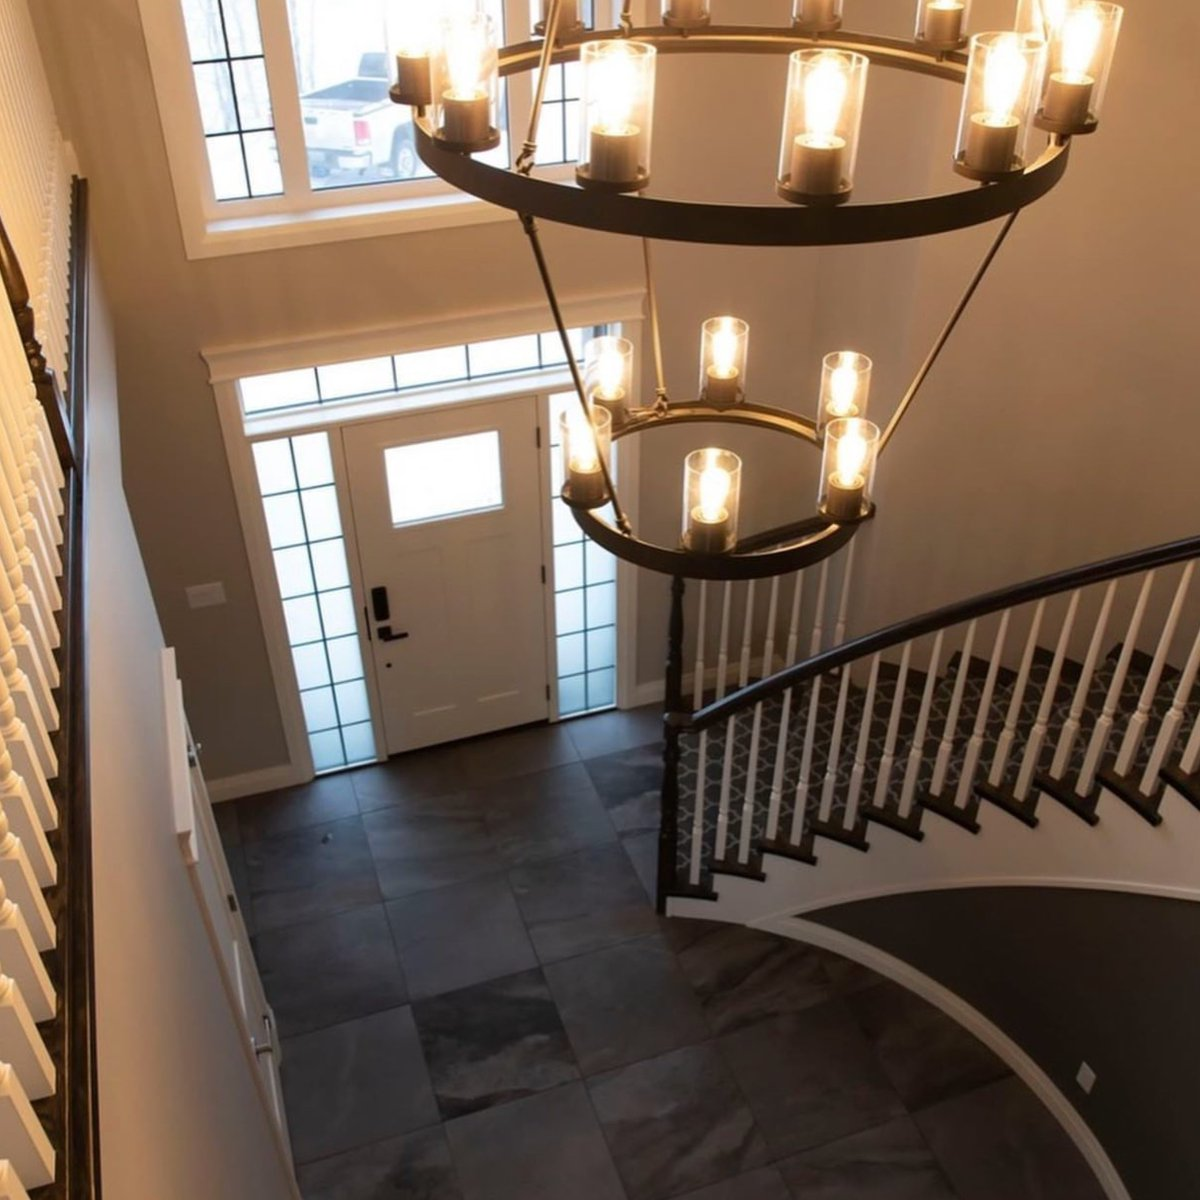 what an amazing foyer entrance of this